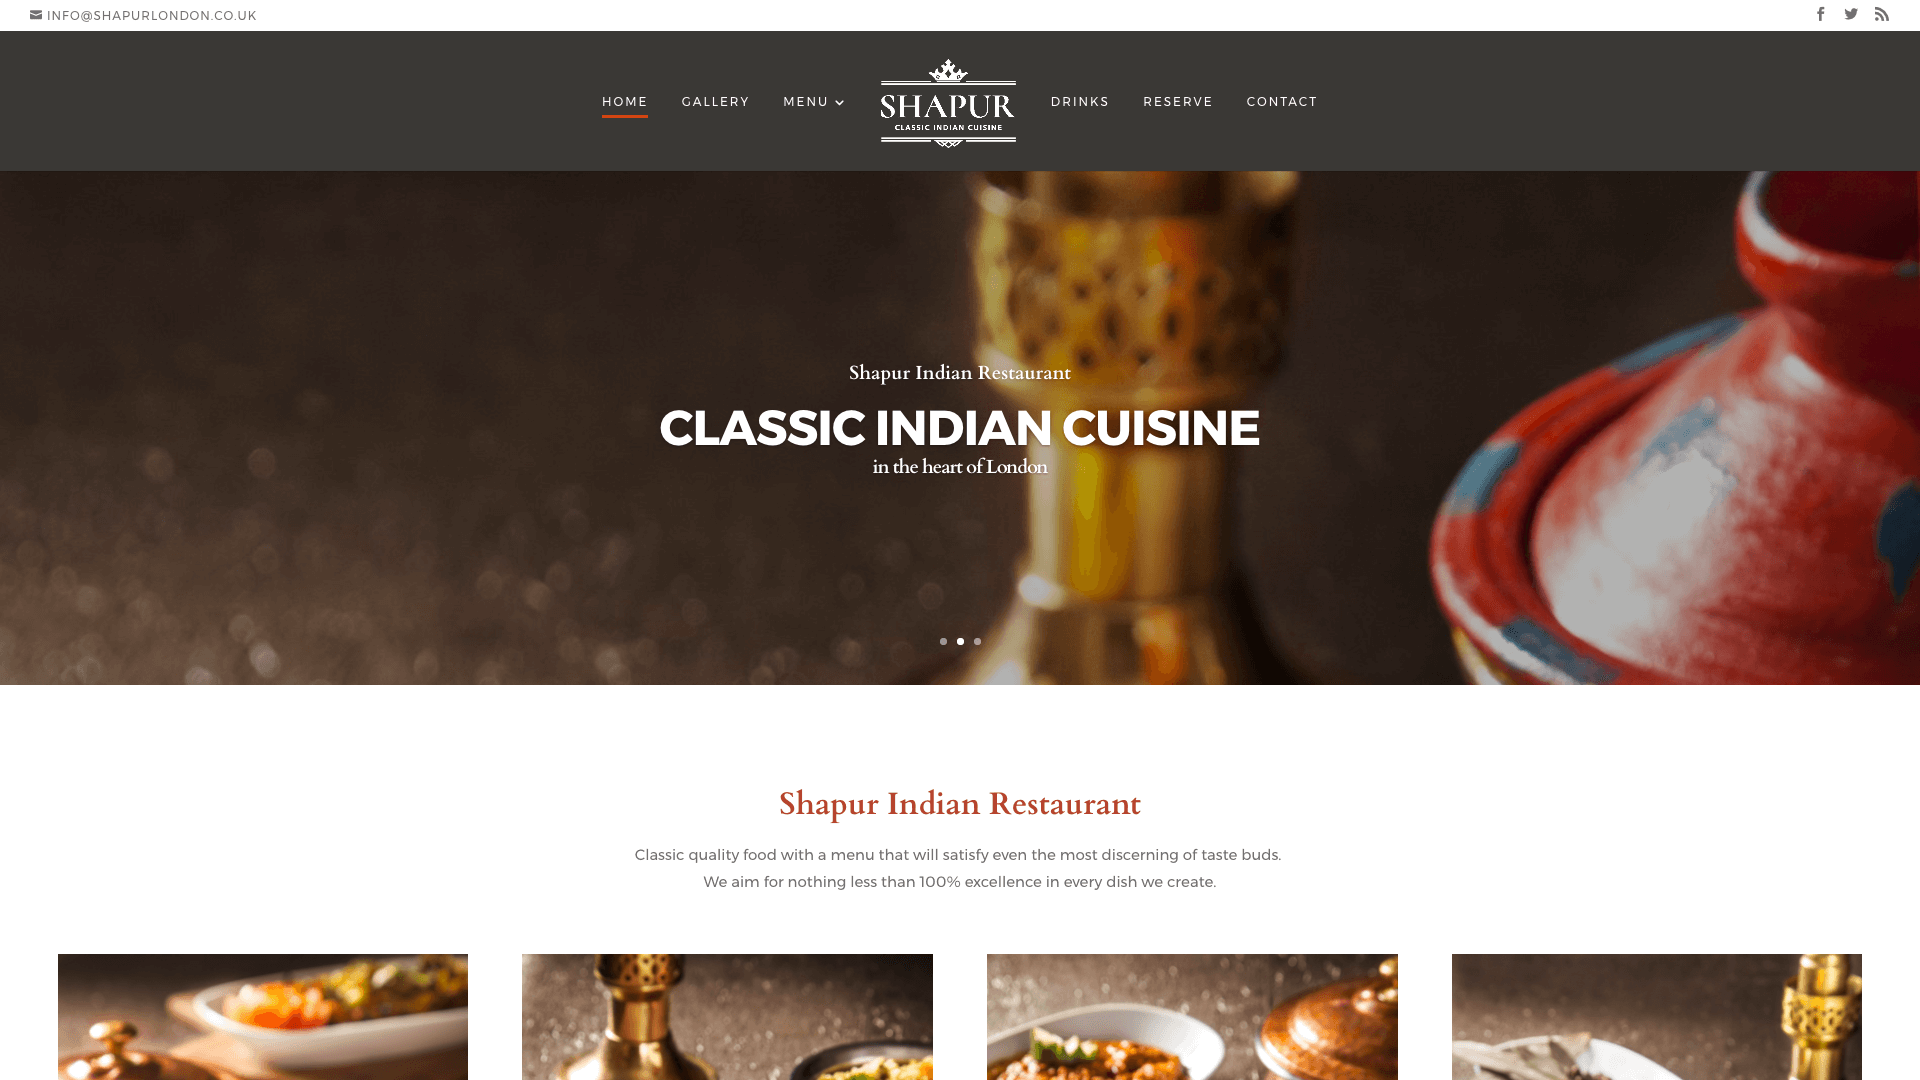 Shapur after 1 - Website design for Indian Restaurant